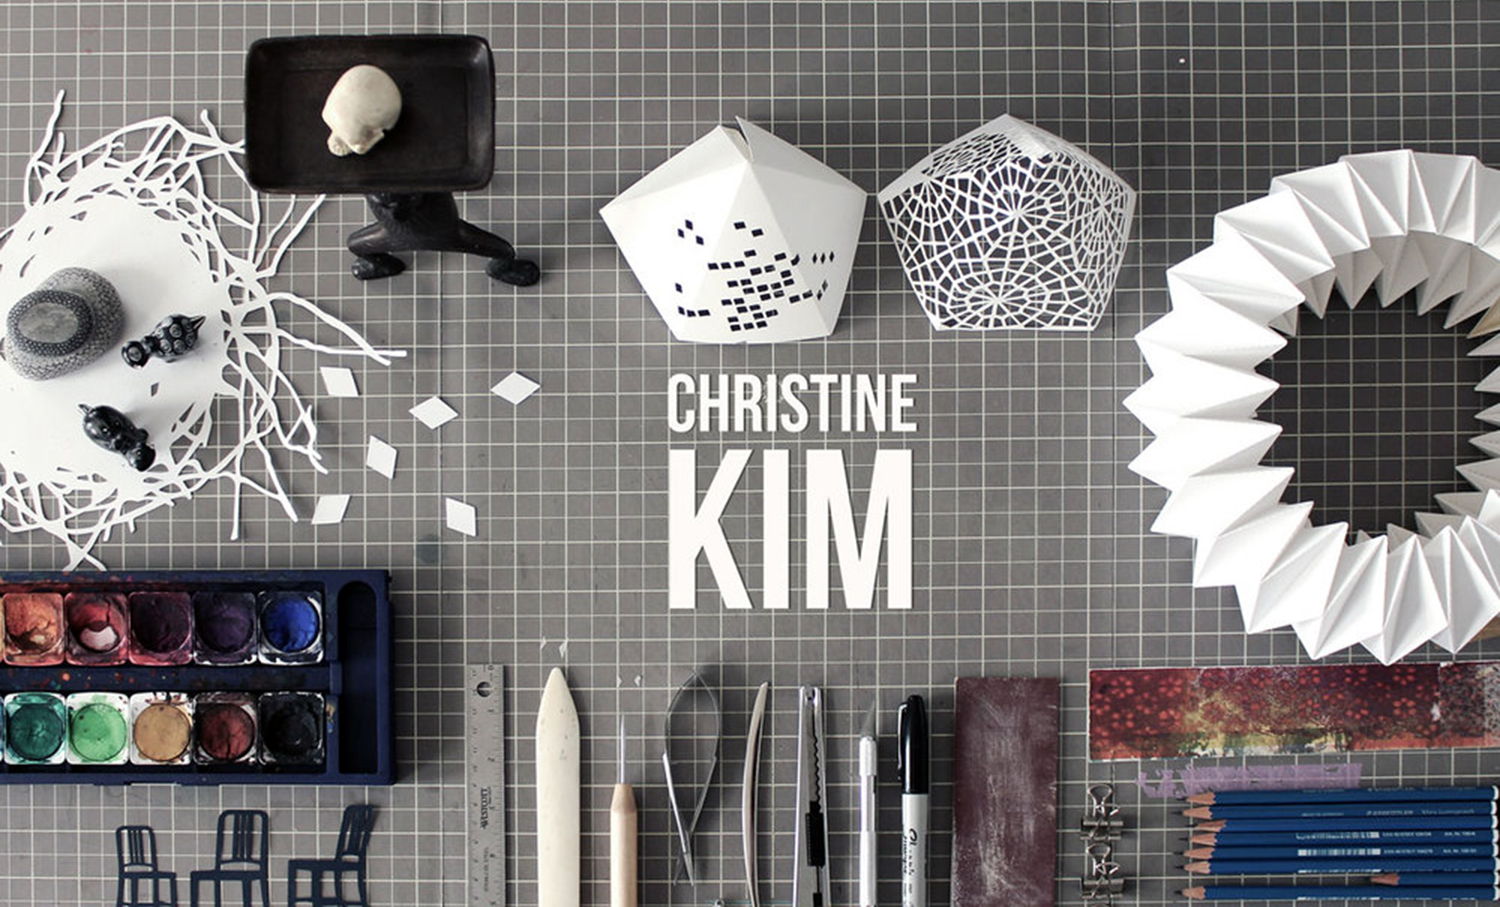 Desktop_ChristineKim.jpg